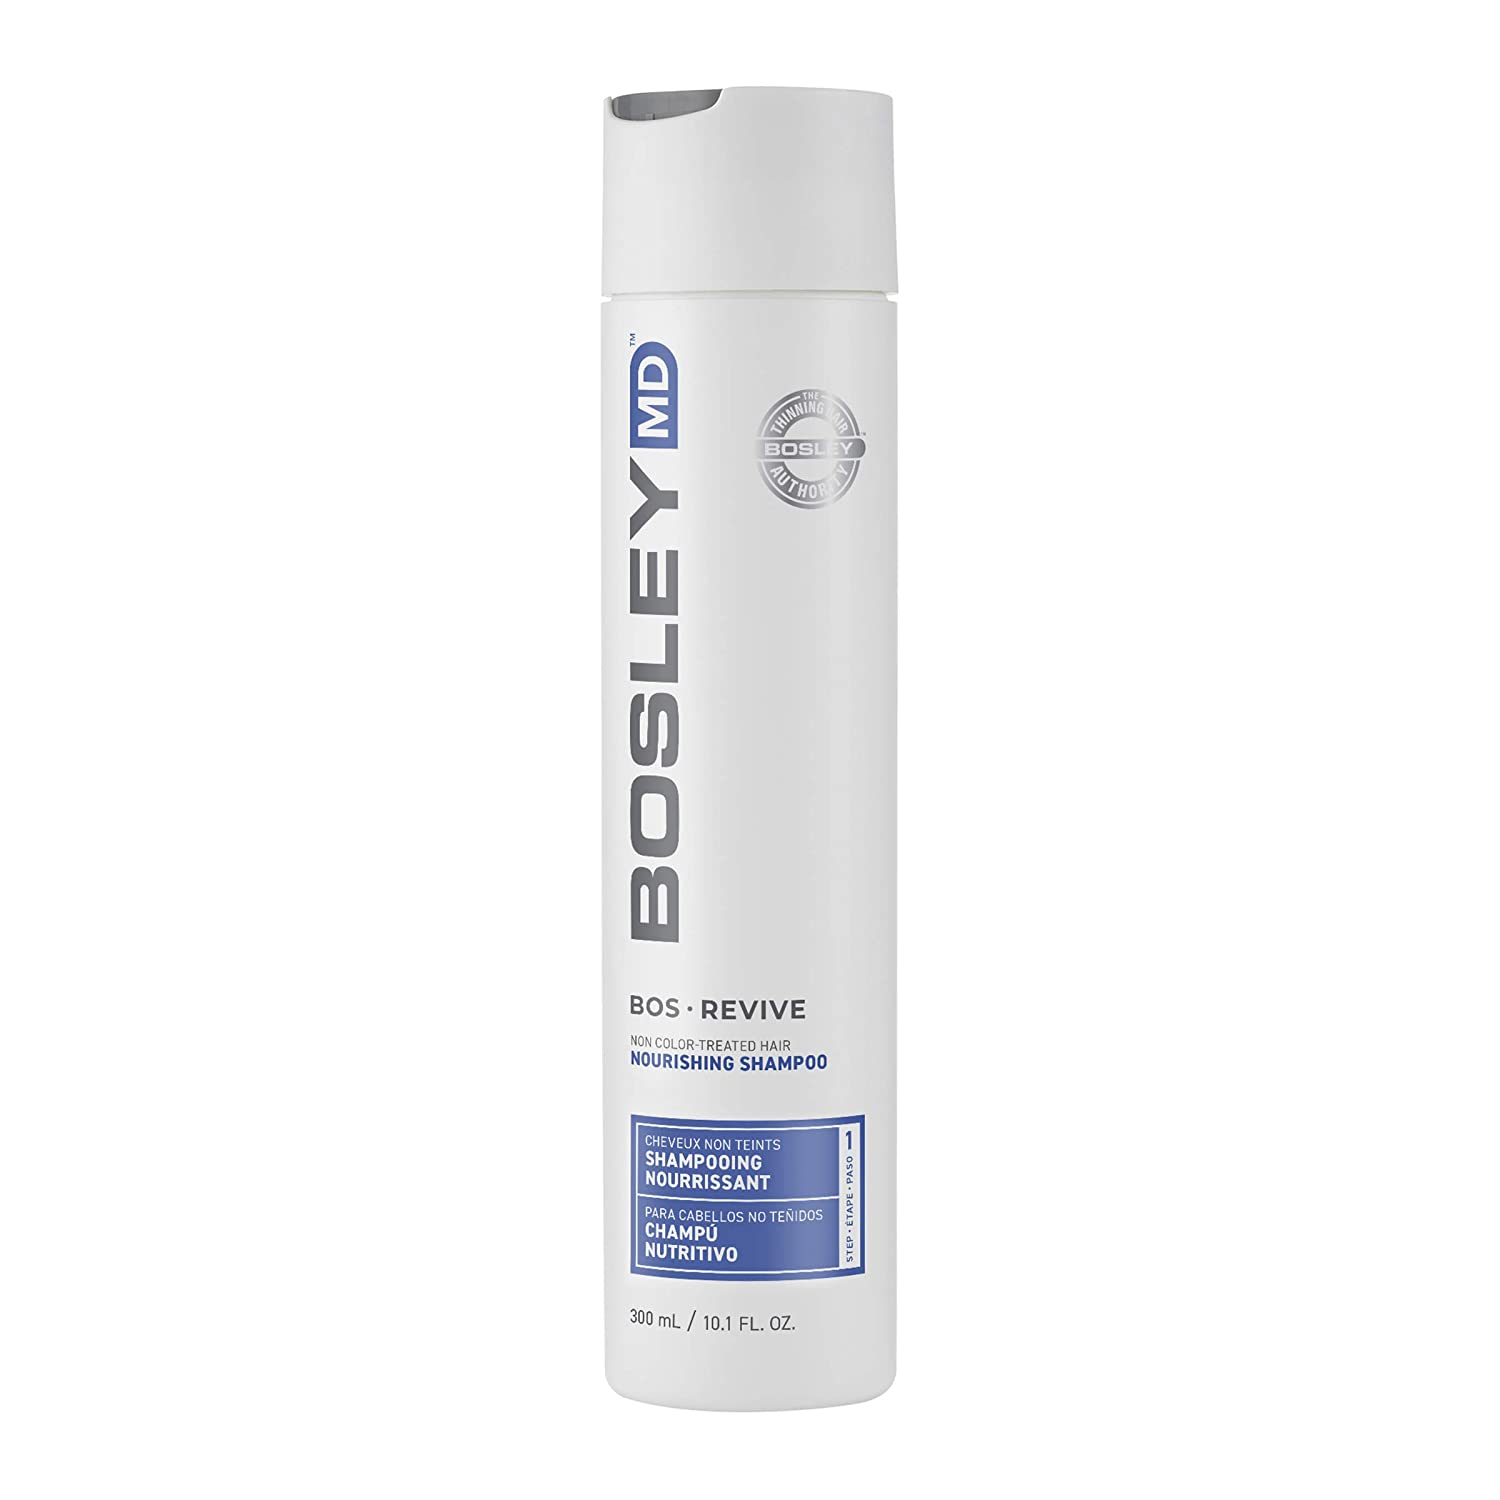 BosleyMD Nourishing Shampoo, Hair Care for Thinning Prevention or Visible Hair Loss